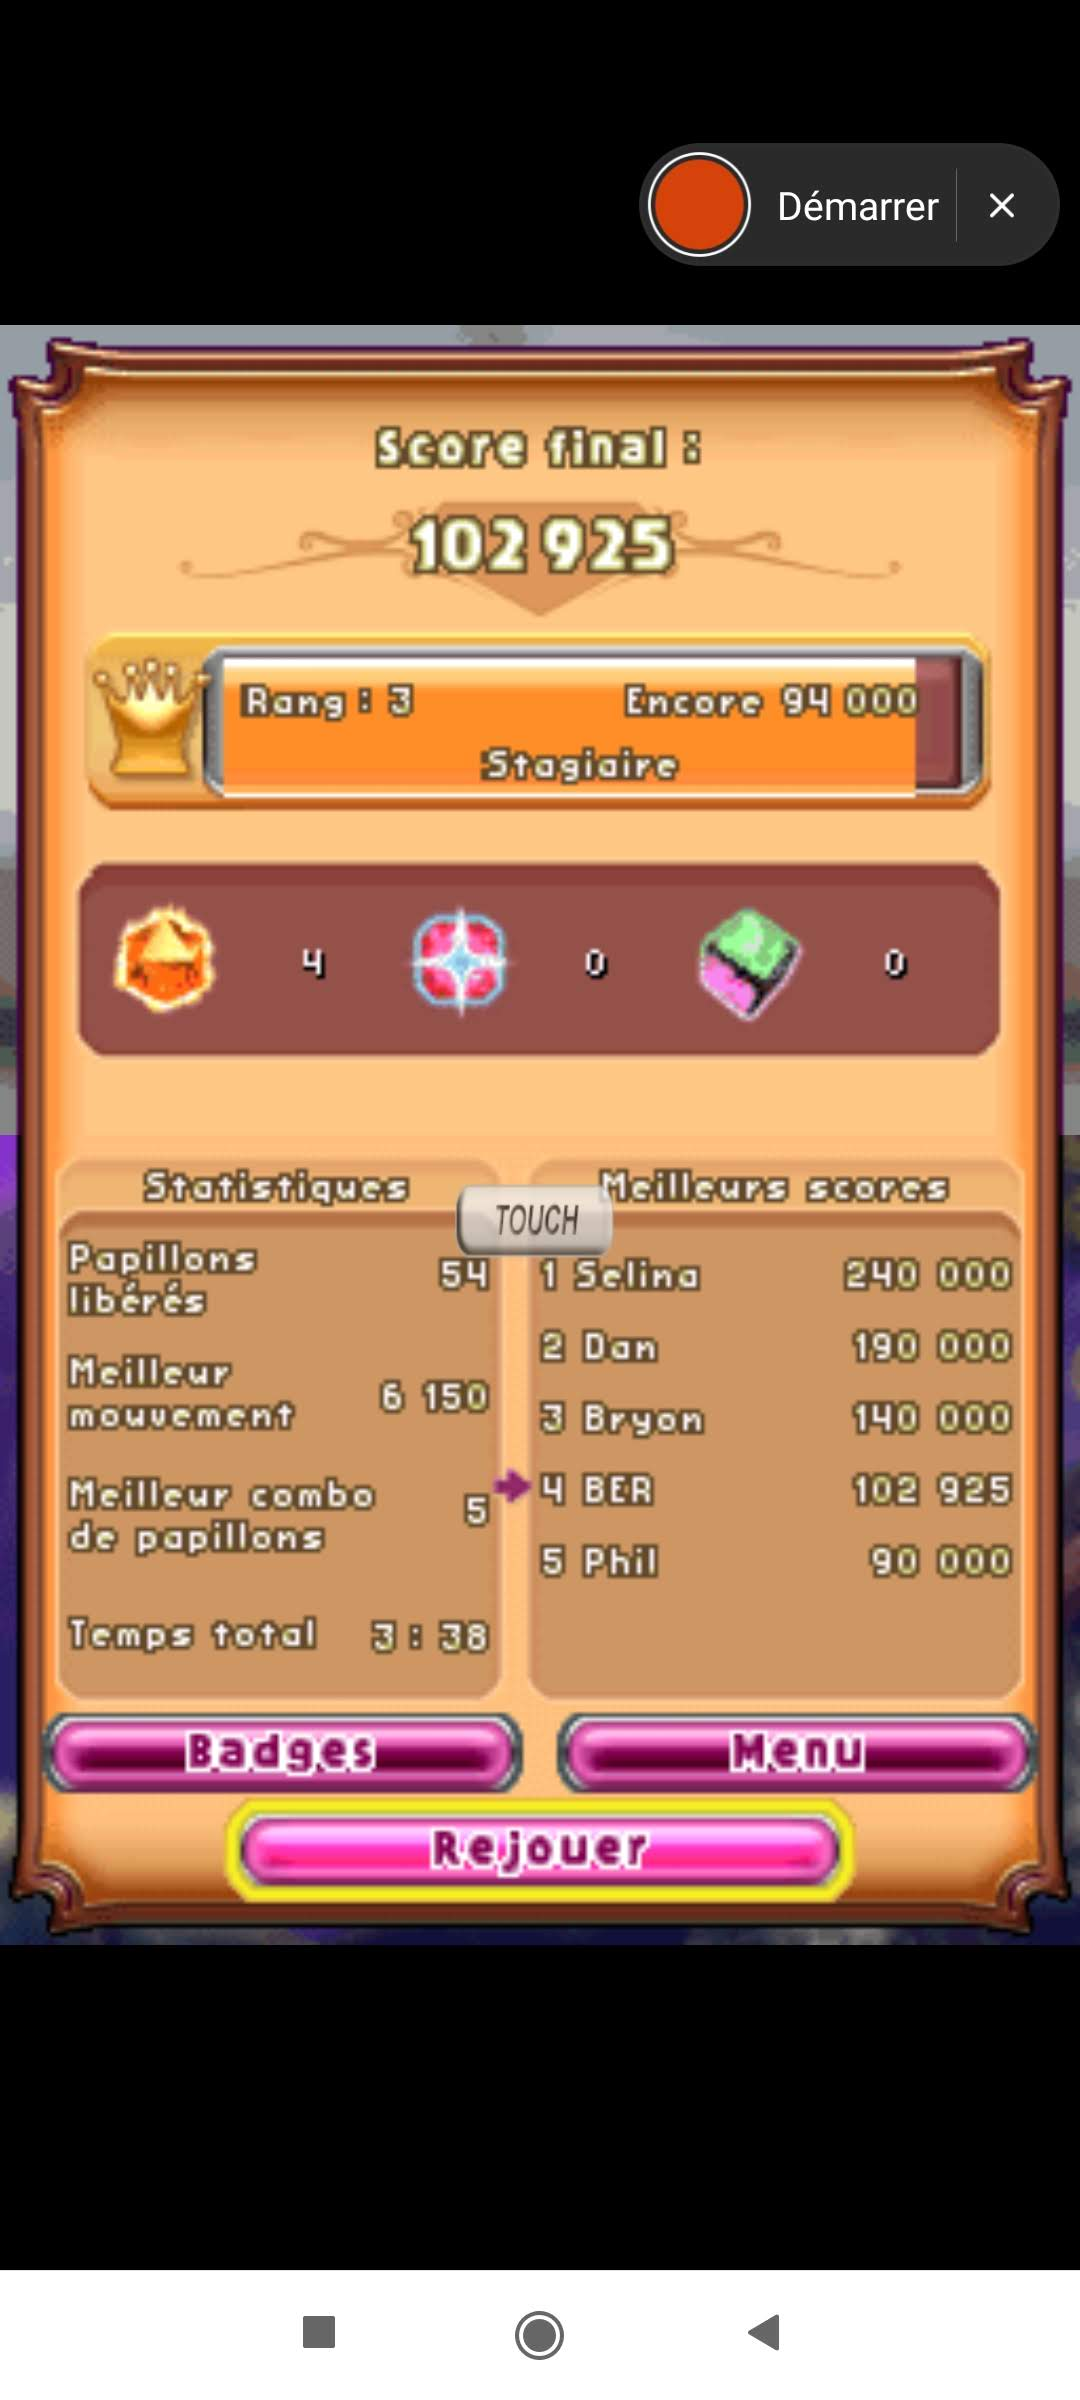 Larquey: Bejeweled 3: Butterflies [Best Move] (Nintendo DS Emulated) 6,150 points on 2020-09-27 04:24:02